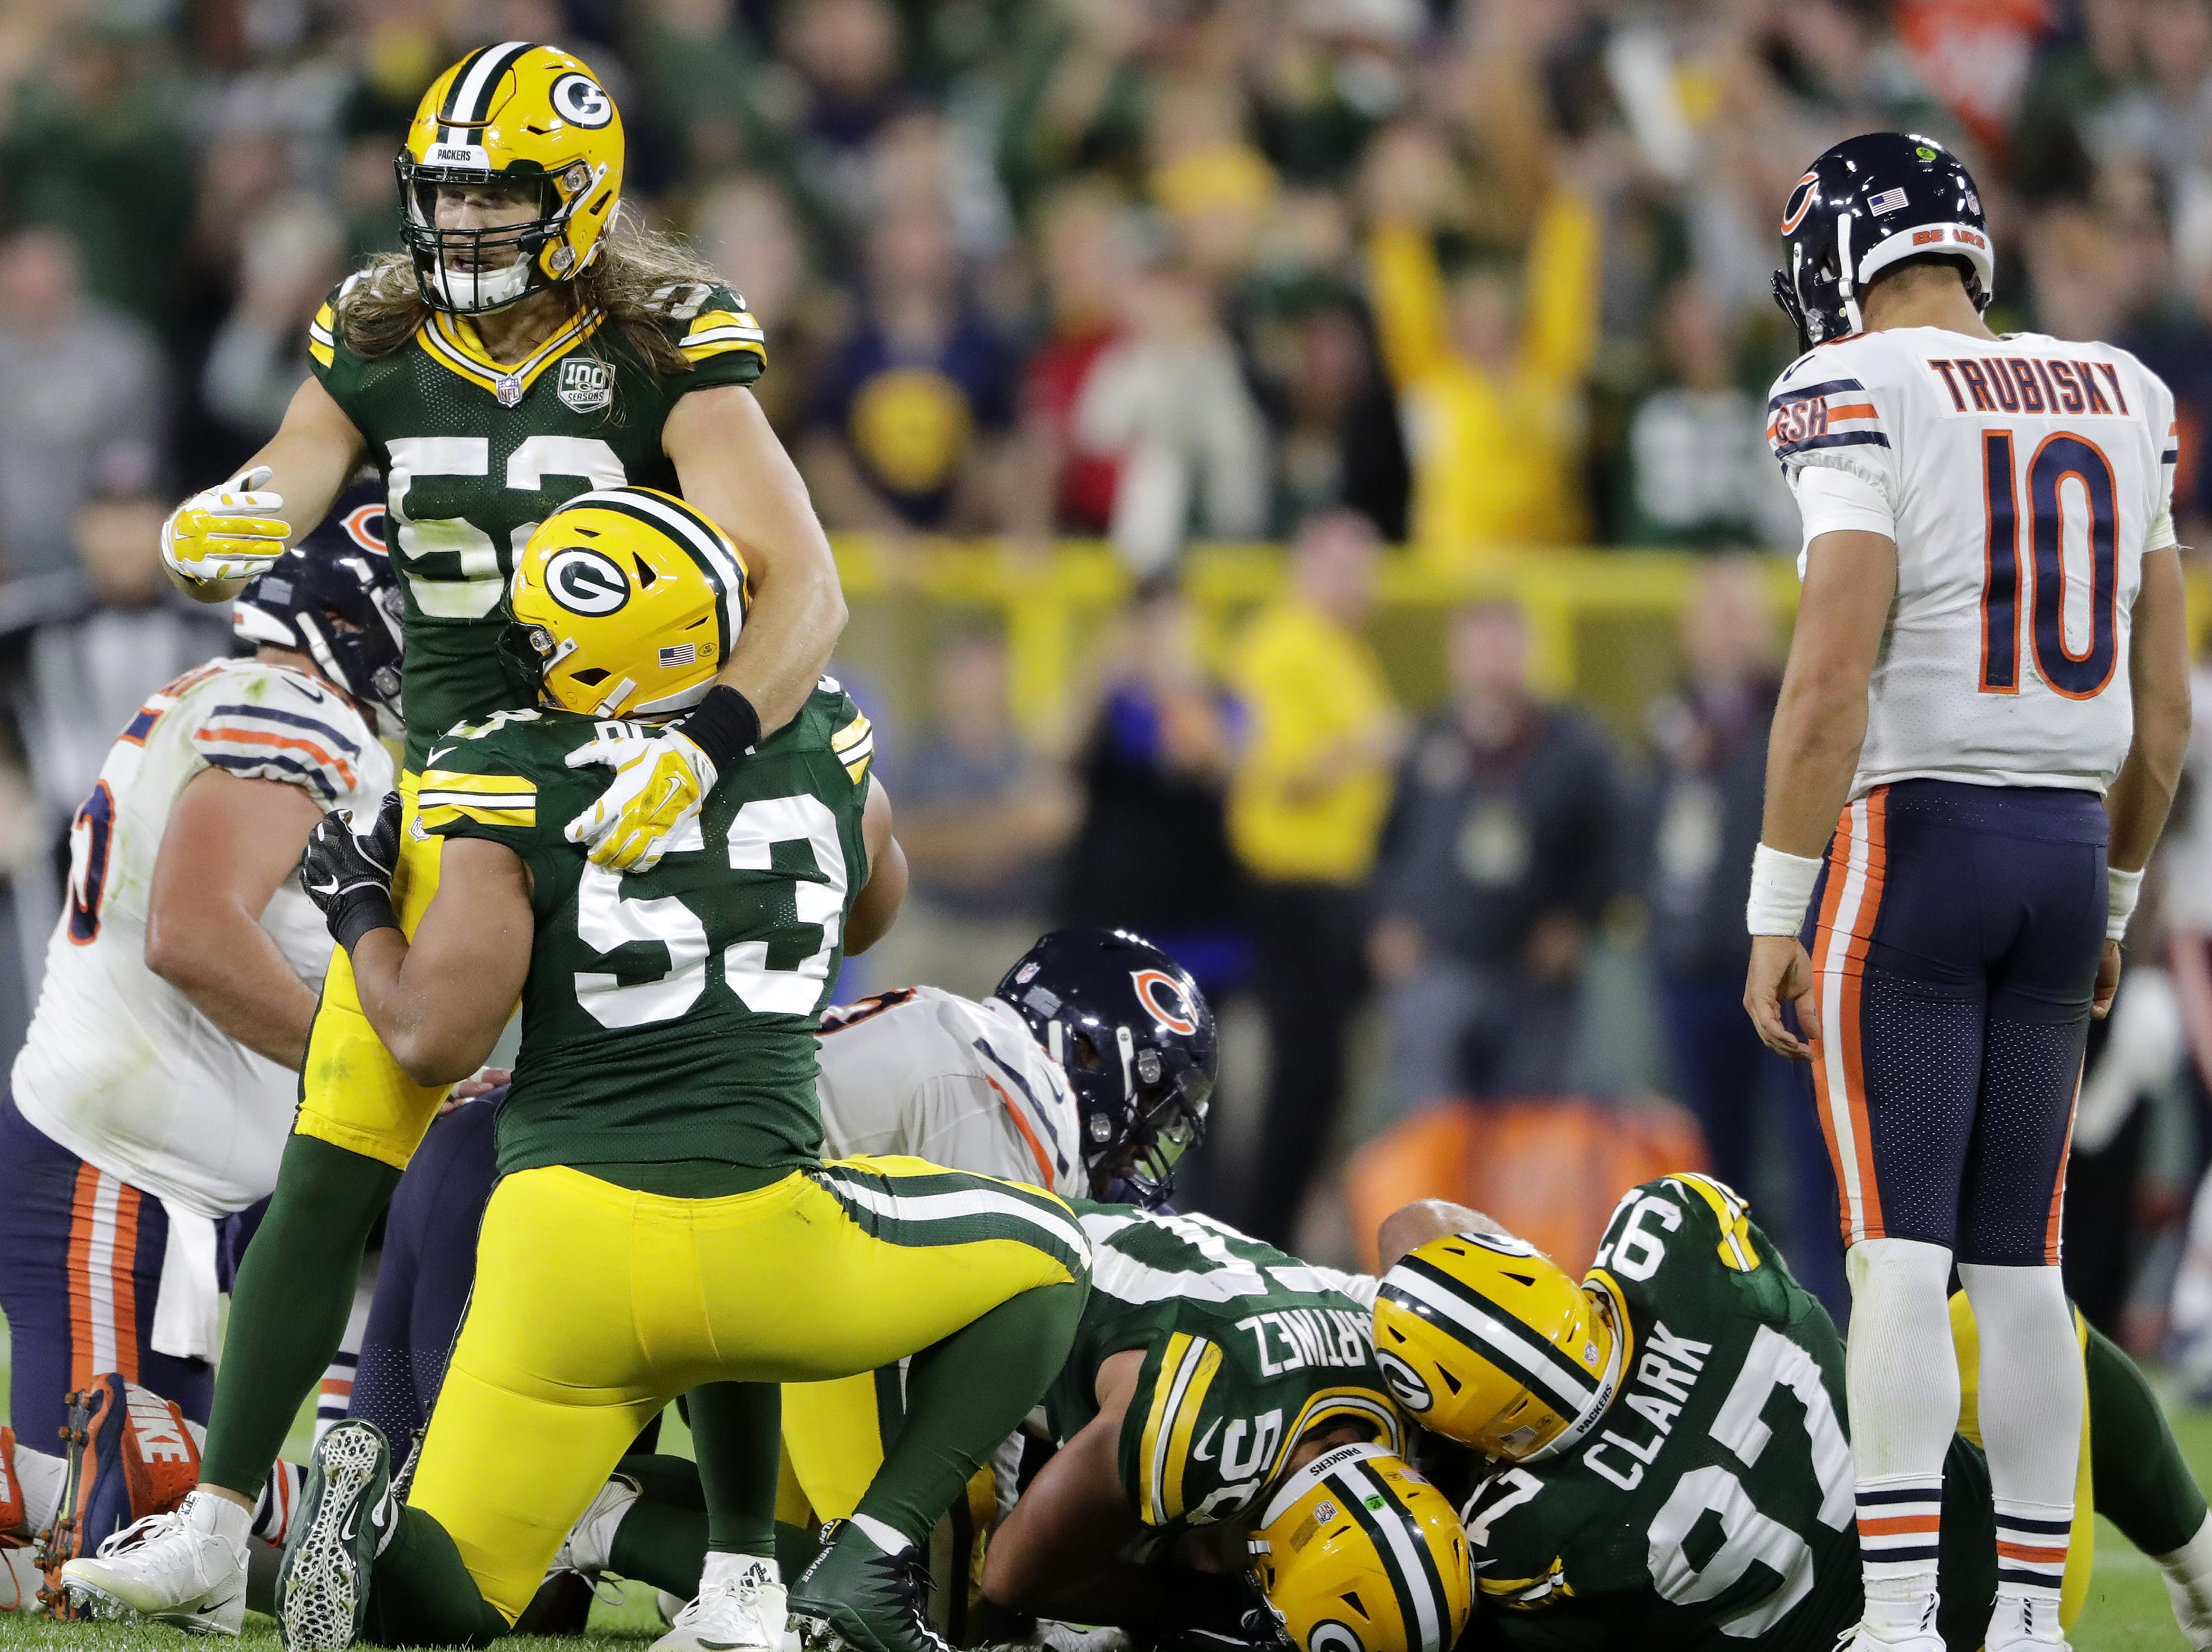 Green Bay Packers linebacker Clay Matthews (52) and linebacker Nick Perry (53) celebrate after Perry forced a fumble from Chicago Bears quarterback Mitchell Trubisky (10) in the fourth quarter at Lambeau Field on Sunday, September 9, 2018 in Green Bay, Wis. Adam Wesley/USA TODAY NETWORK-Wisconsin